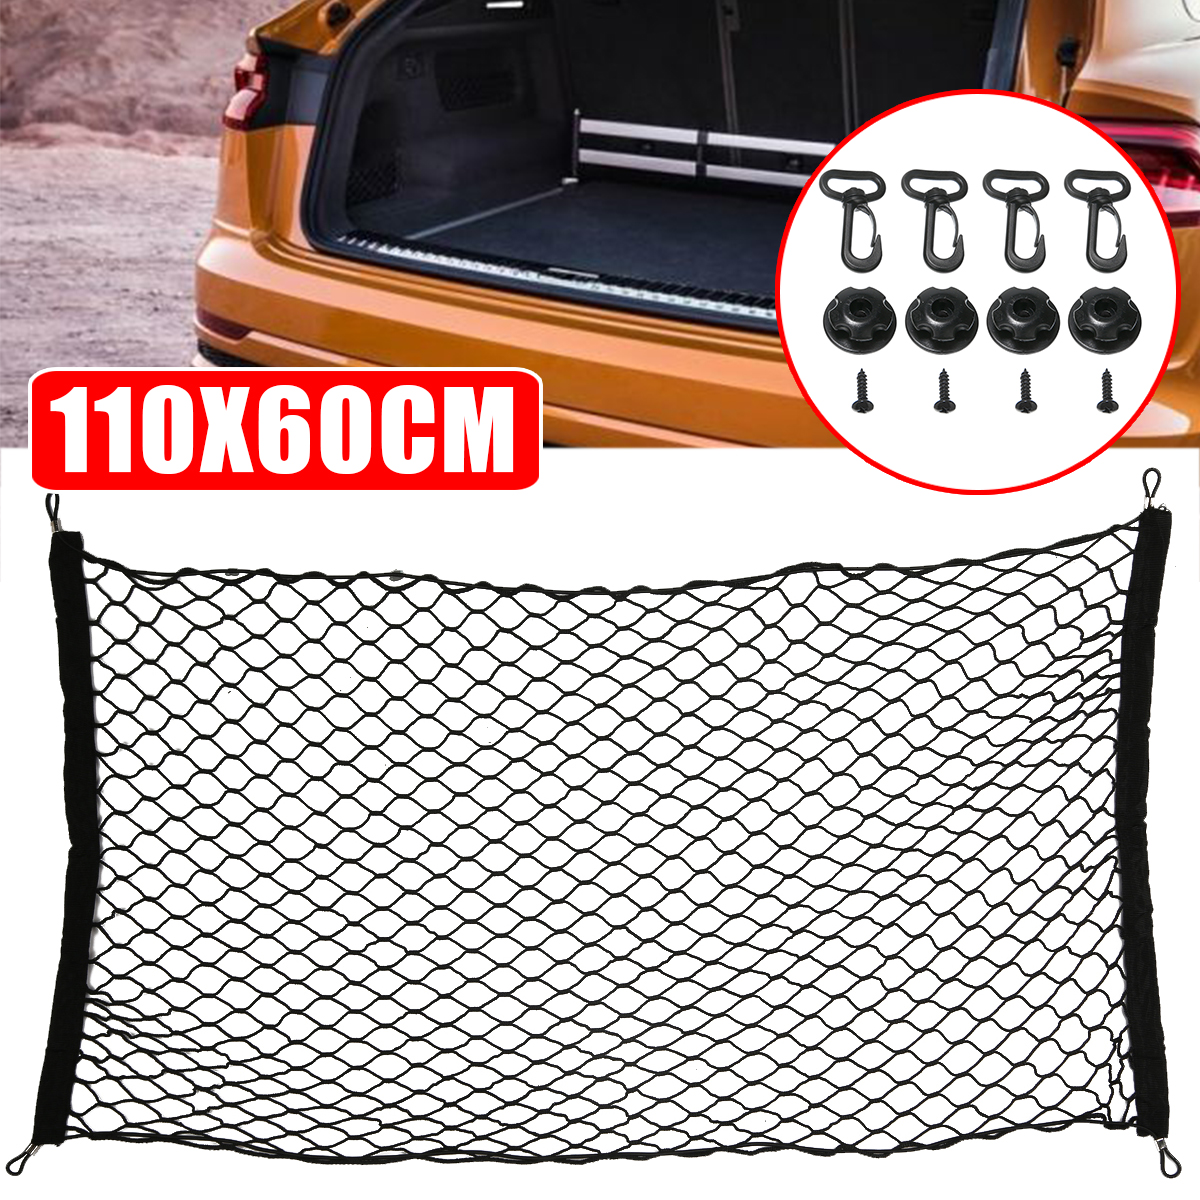 Auto Care 110x60cm Universal Car Trunk Luggage Storage Cargo Organizer Nylon Stretchable Elastic Mesh Net Set image